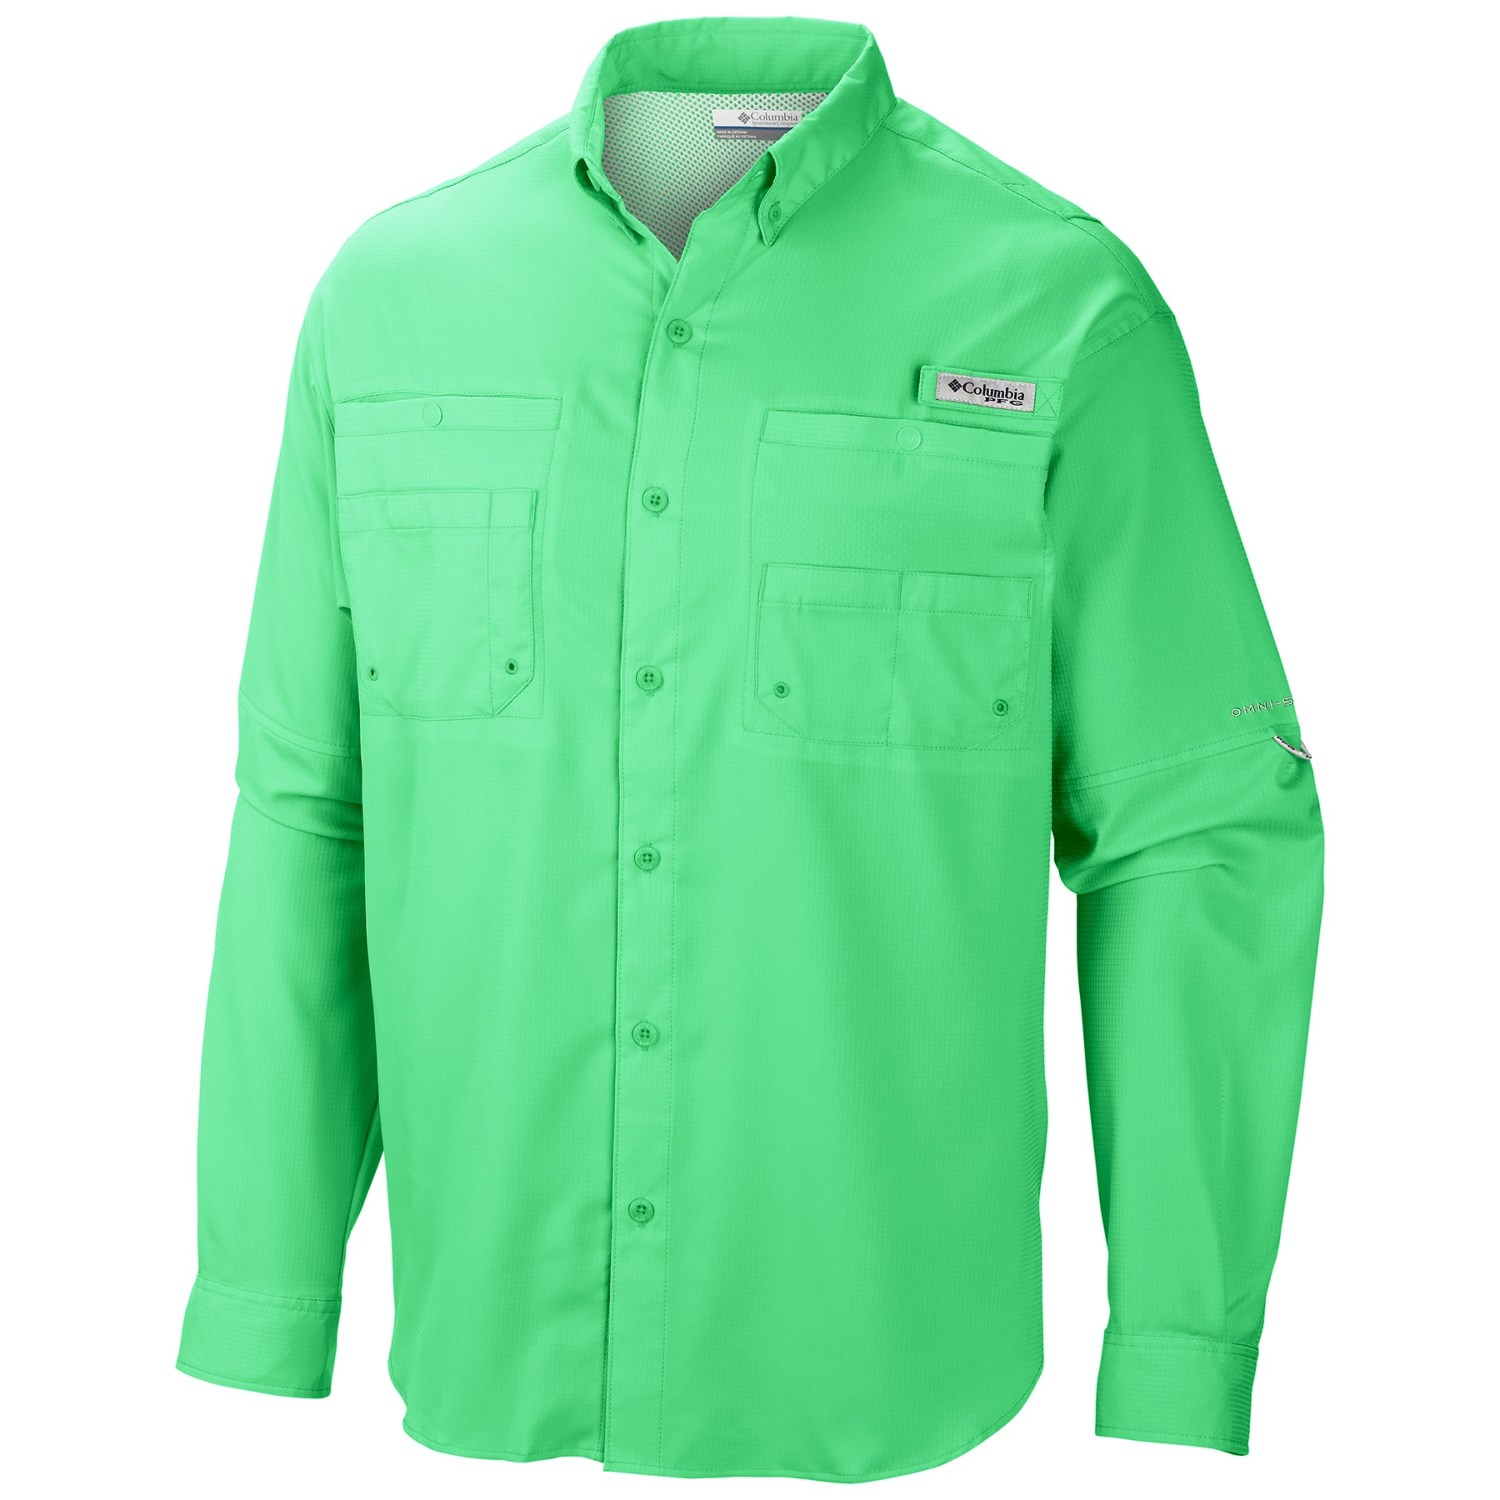 Columbia sportswear pfg tamiami ii shirt upf 40 long for Design your own t shirt big and tall